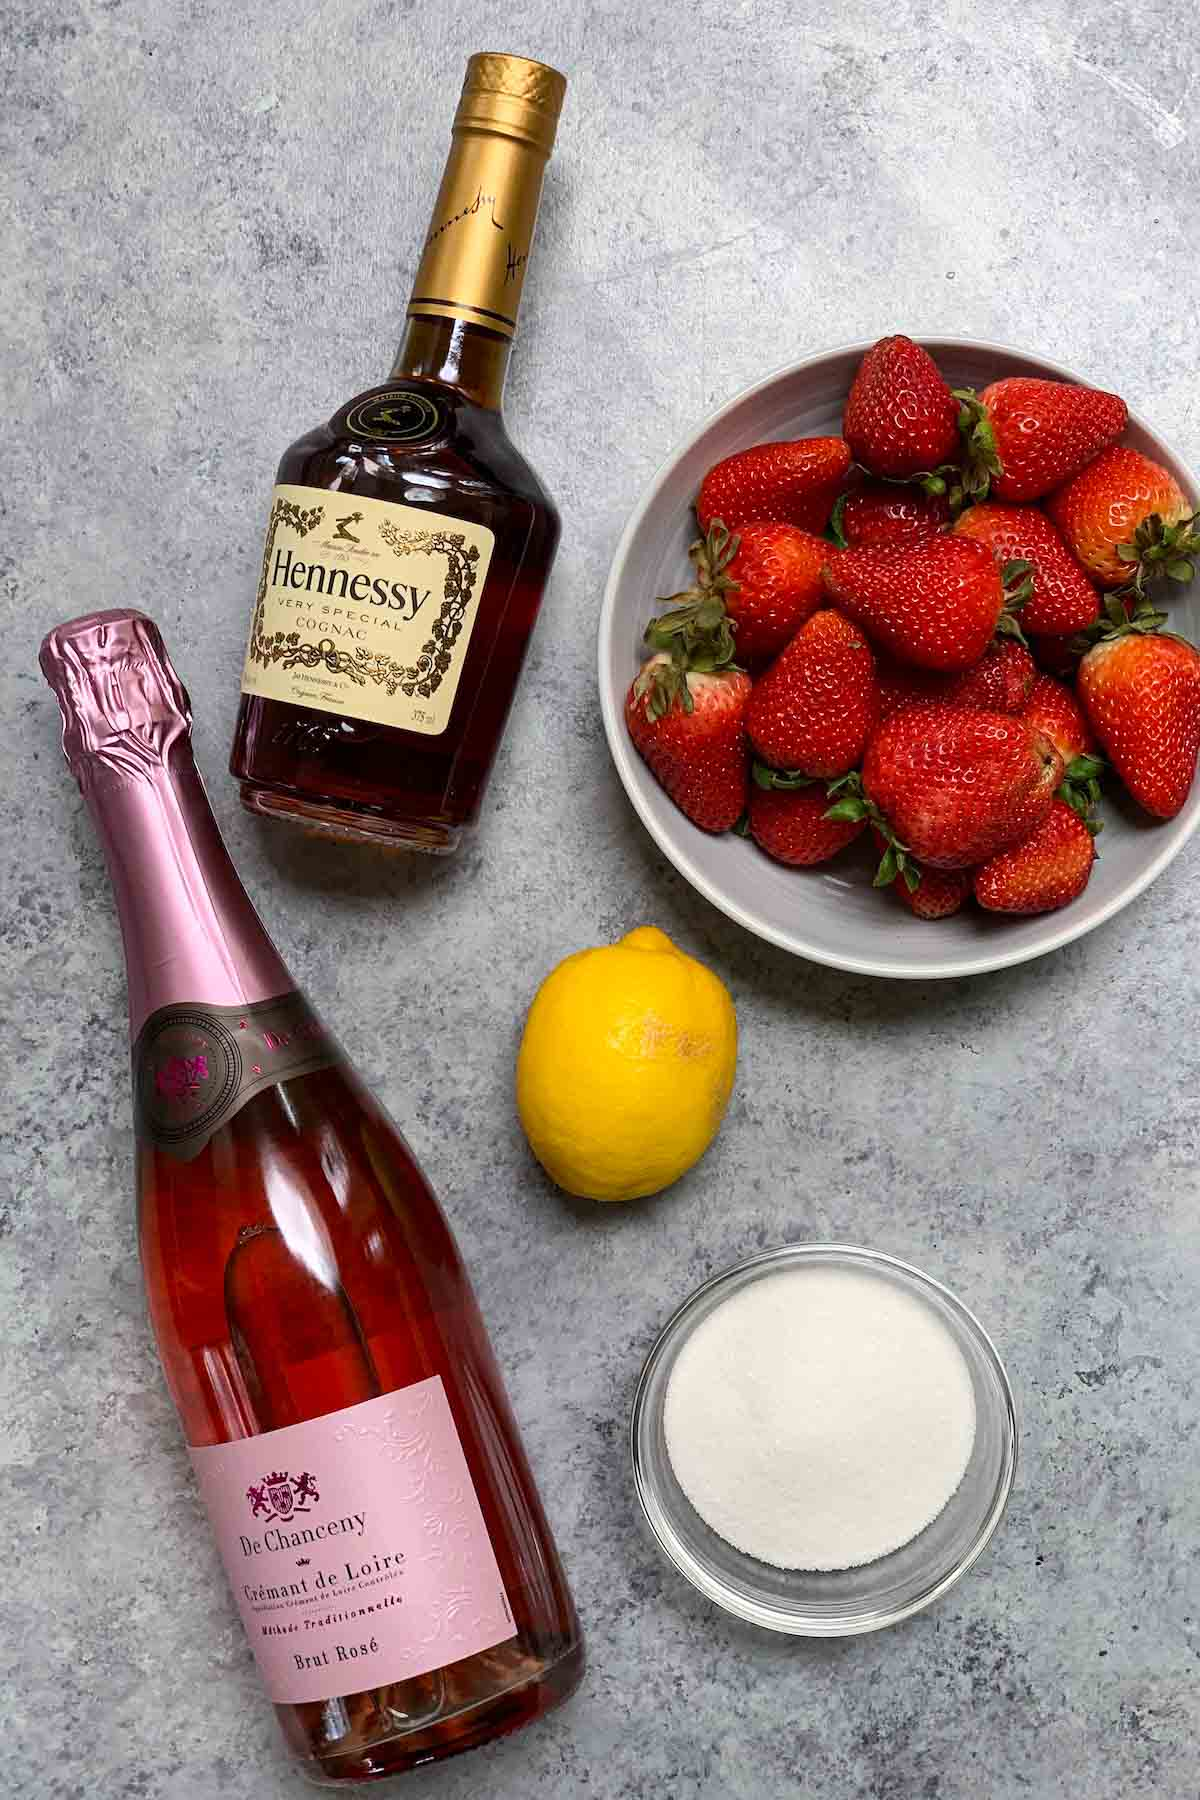 Strawberry Hennessy Drink  ingredients on the counter.